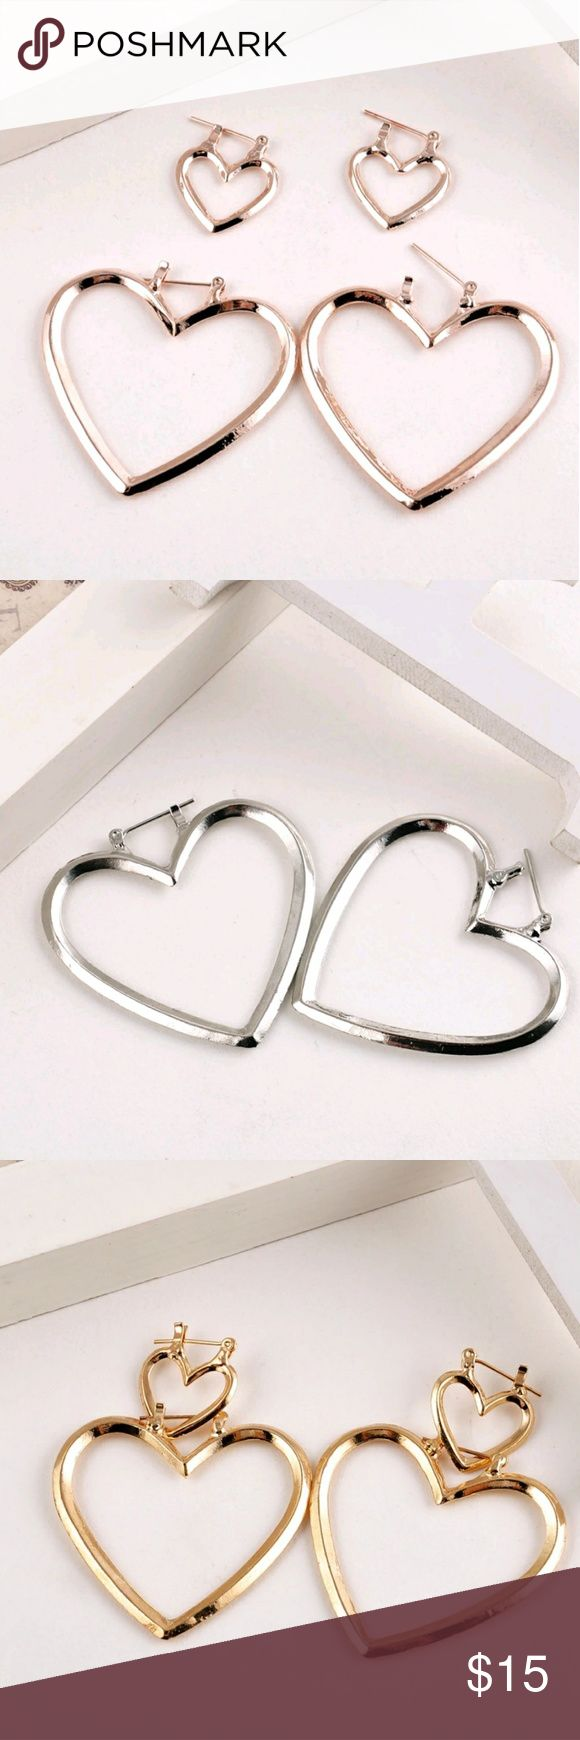 ANY 4 PAIRS FOR  $15! Double Heart Earrings These come 2 pairs in 1 set! Larger heart earrings & smaller heart earrings. Avail in Silver, Gold or Rose Gold. They are priced great! Bundle & save on shipping! Choose Gold or Silver in Options. Once you add 4 pairs to your bundle, submit offer for $15 & it will be accepted! Gold stock# 144 Silver Stock # 244 Rose Gold Stock# 344 Jewelry Earrings